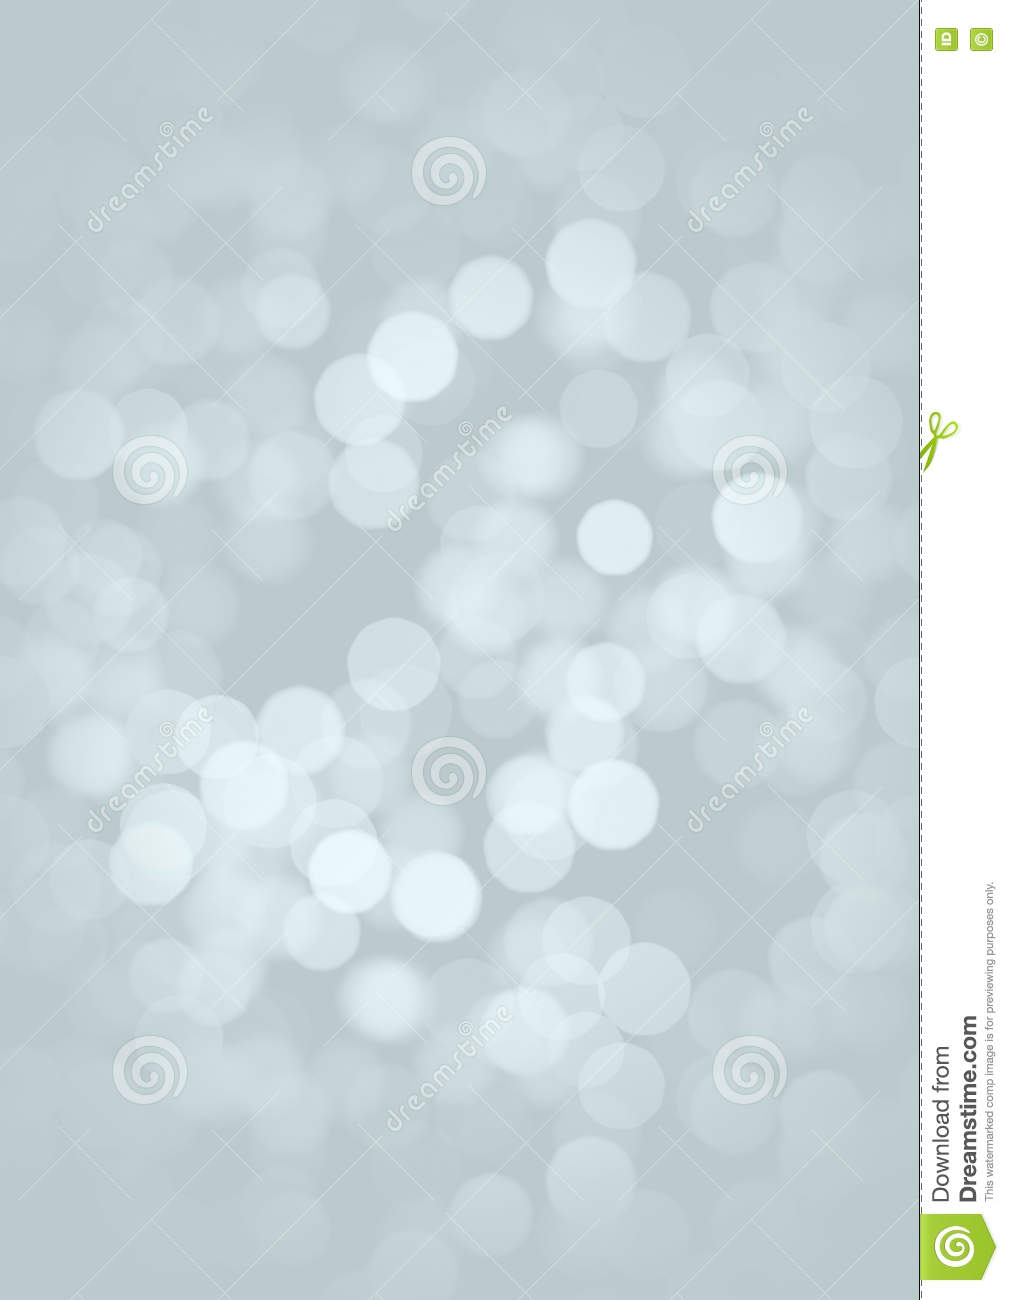 Dreamy Grey White Dots Background Stock Photo - Image of ...